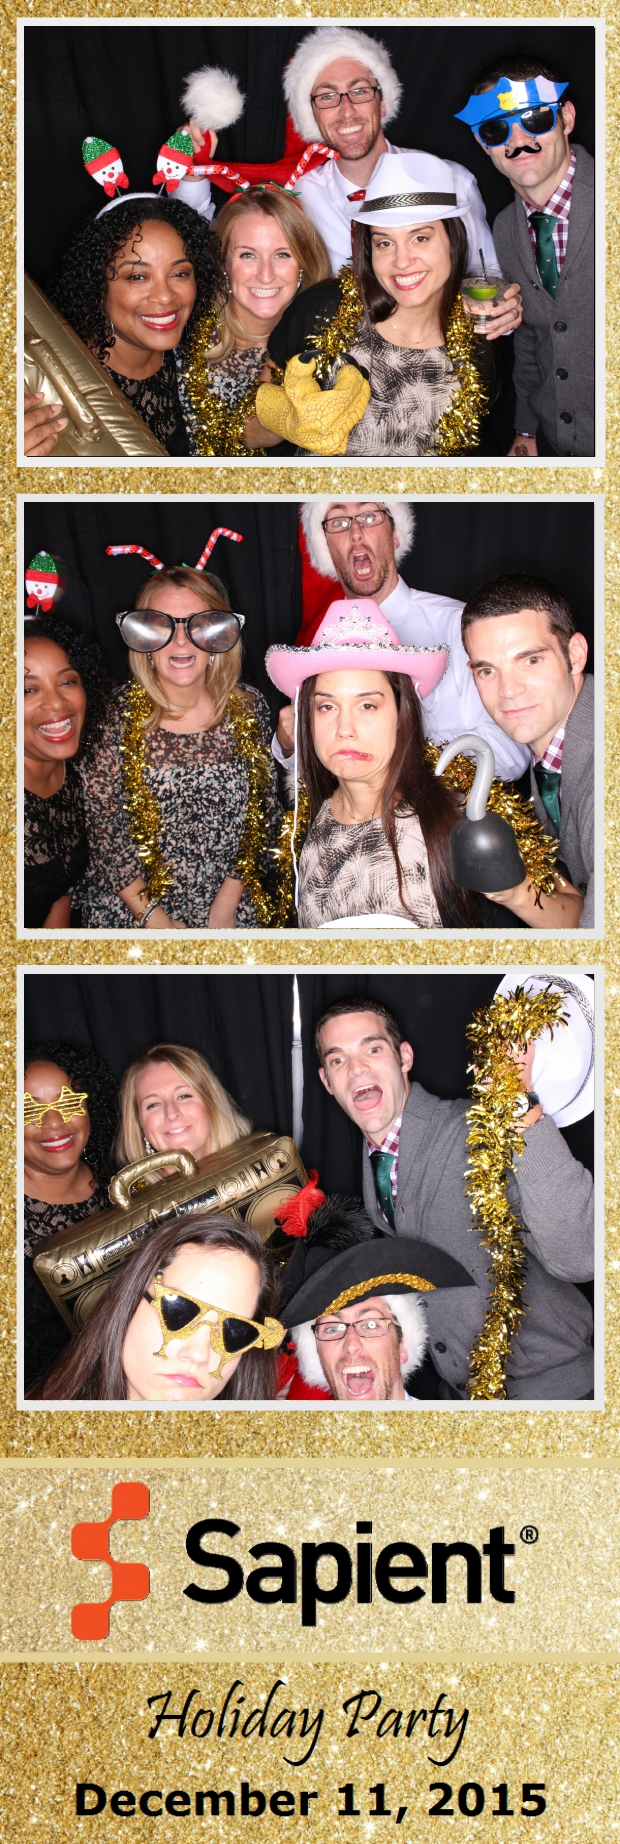 Guest House Events Photo Booth Sapient Holiday Party (35).jpg